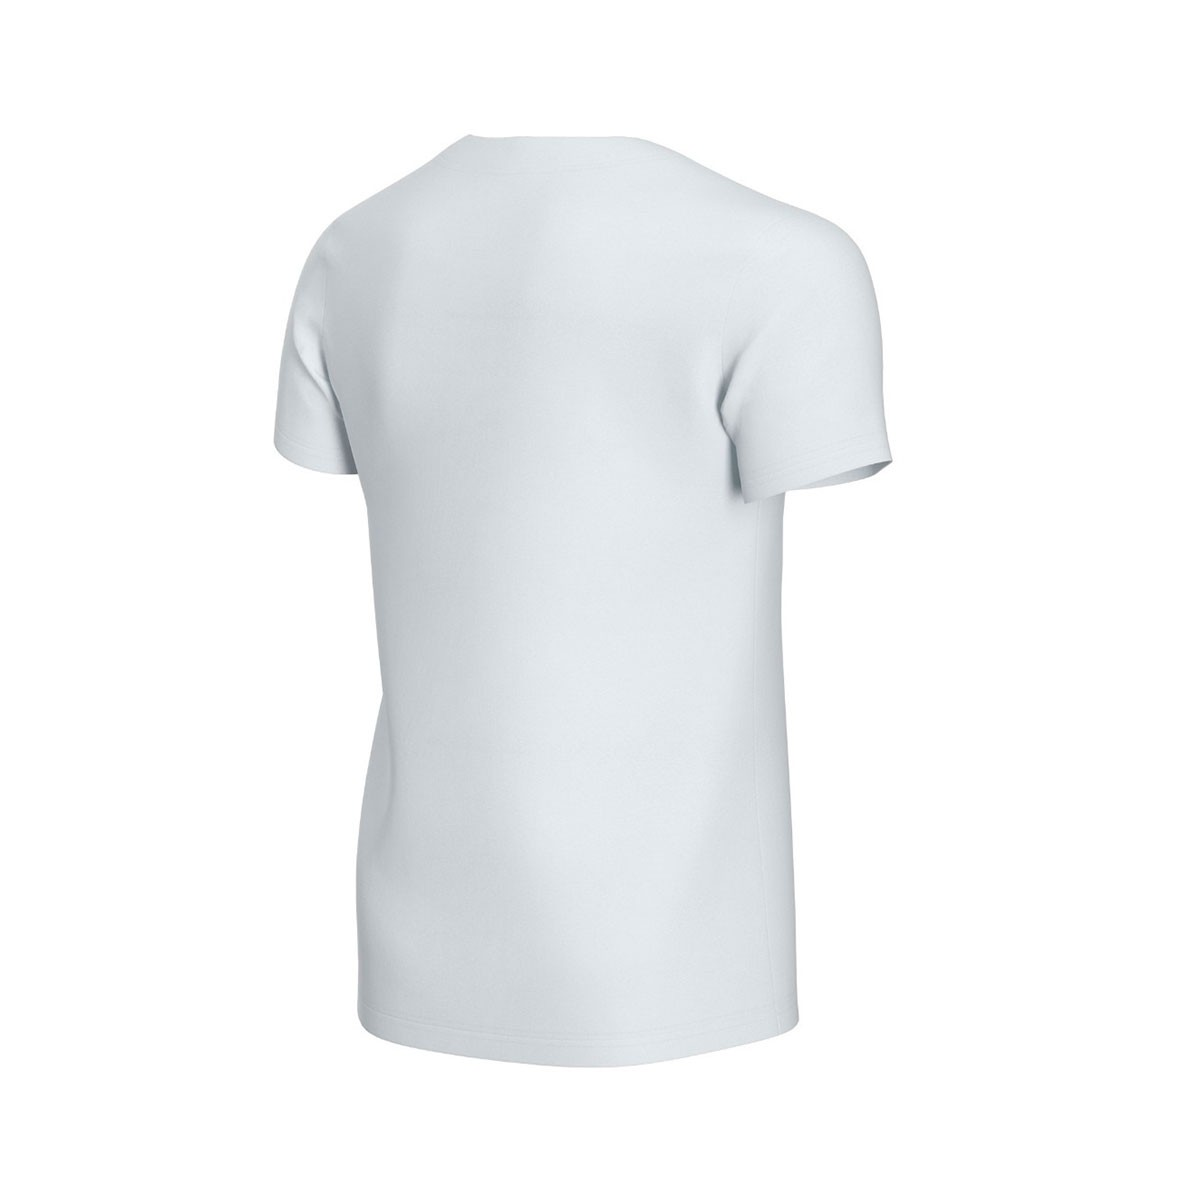 Camiseta Nike Air Infantil - Branco